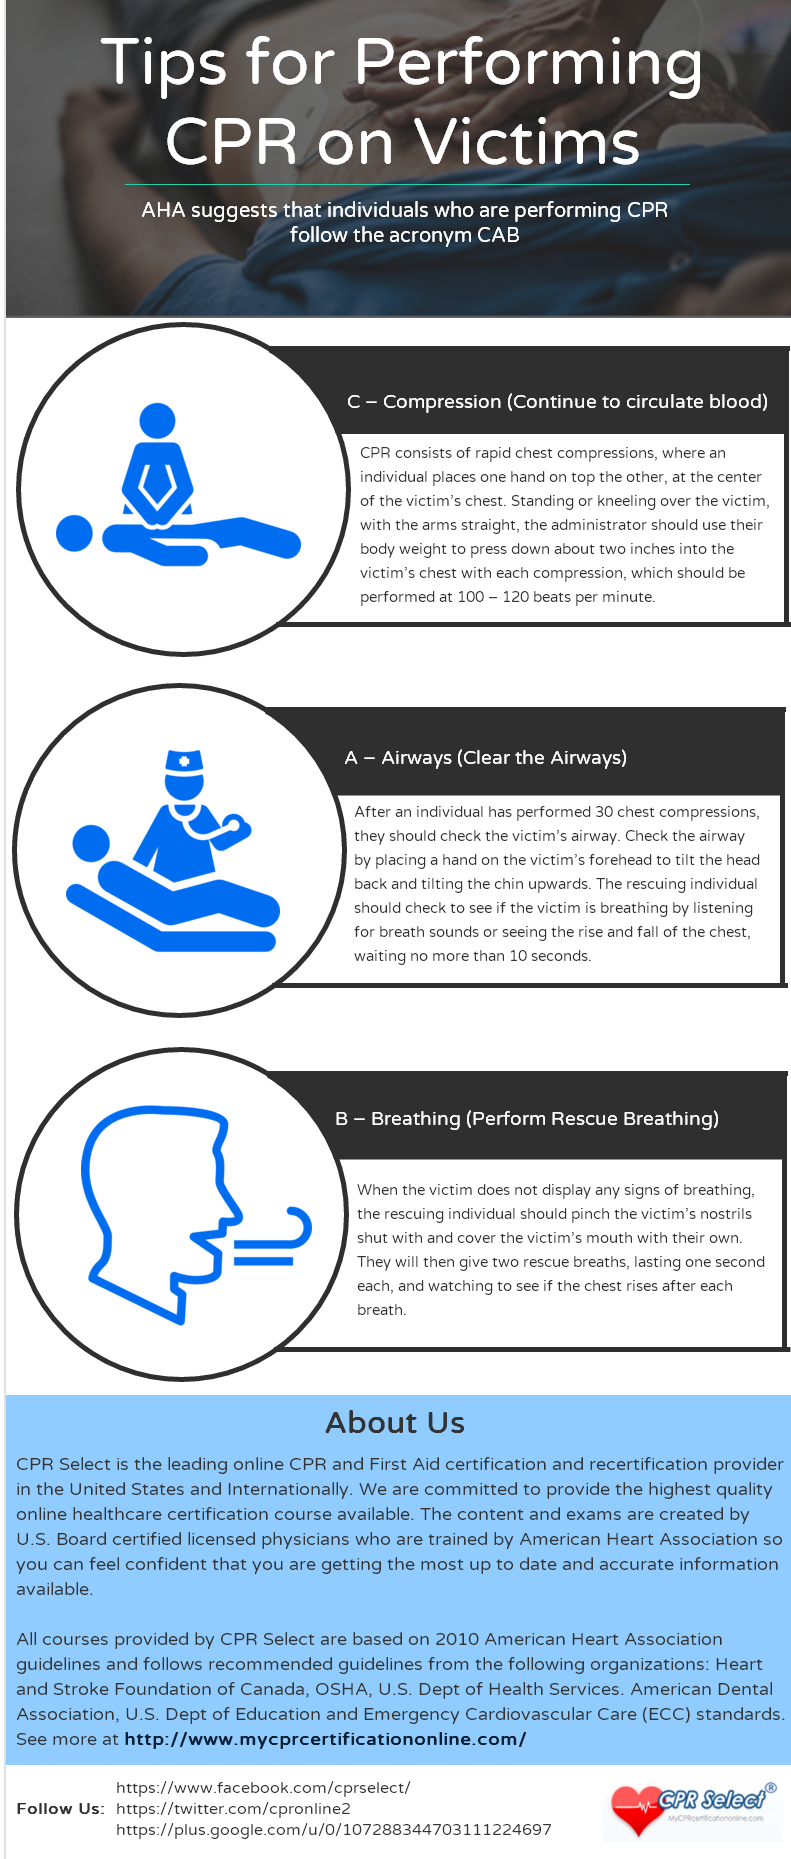 Tips for performing cpr on victims bruse rockwell medium to know more about cpr training and first aid certification course visit cpr select 1betcityfo Choice Image